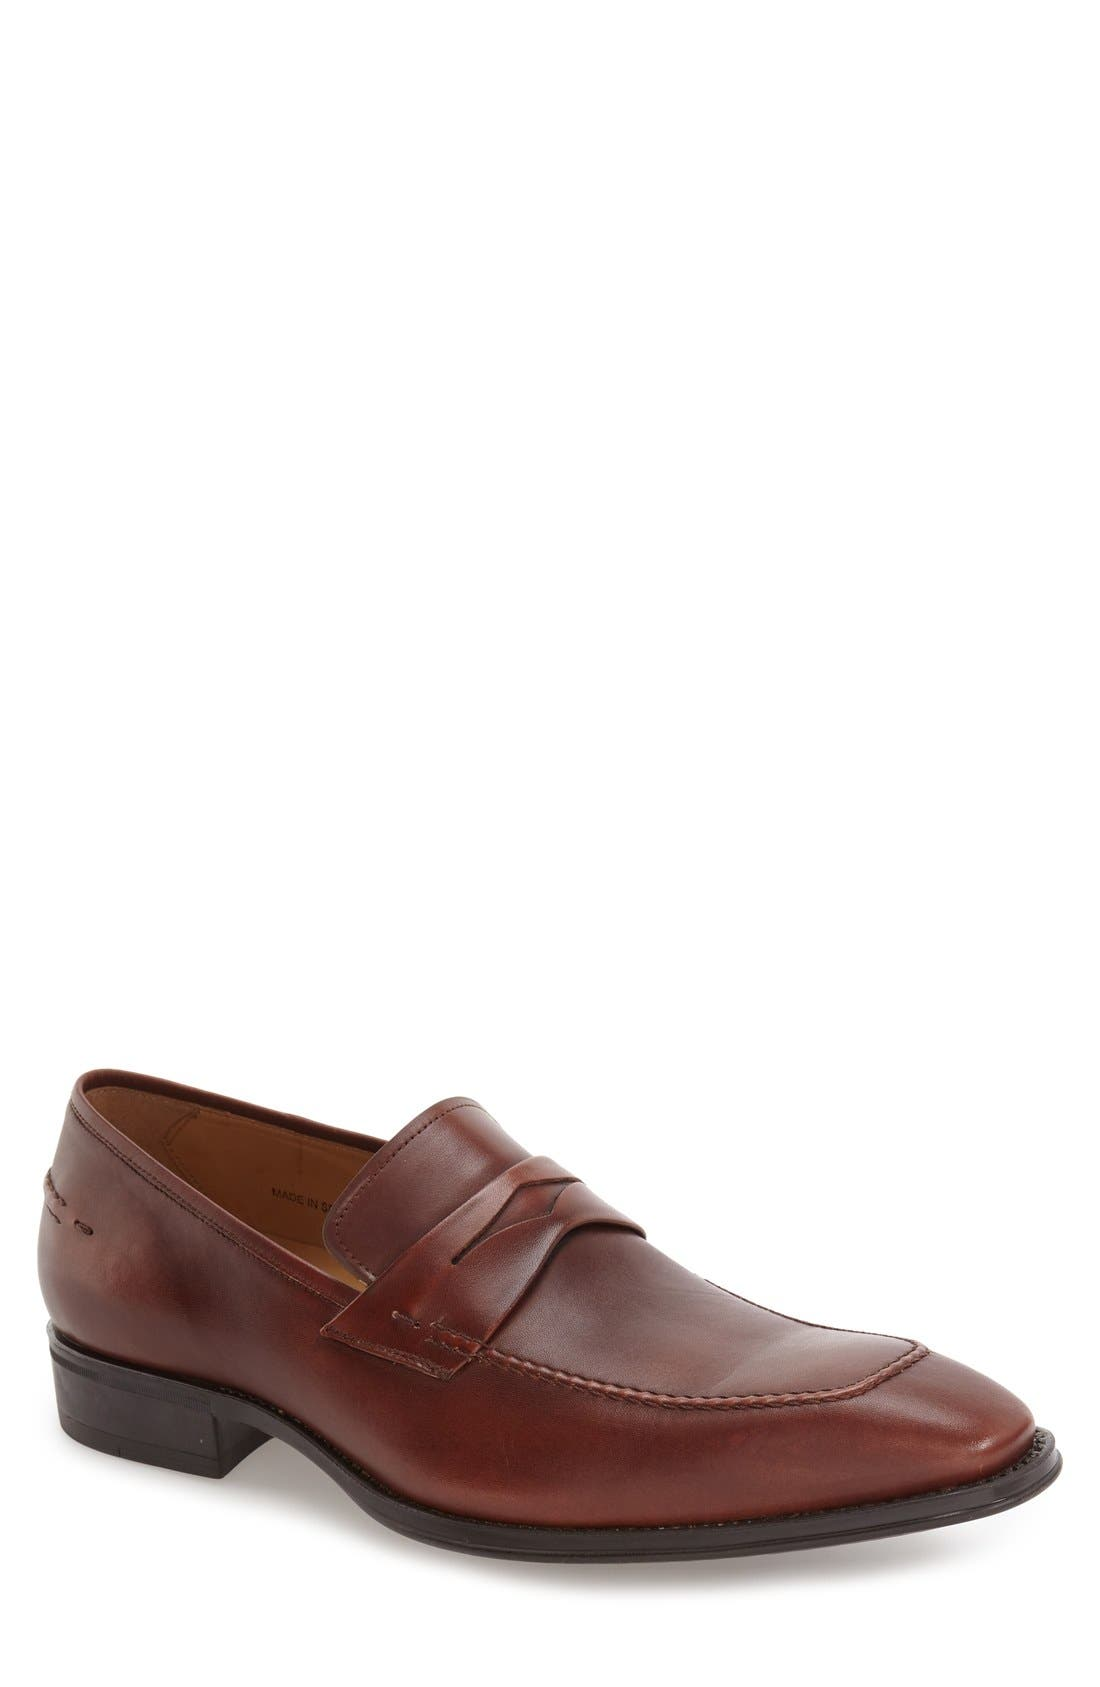 'Trento' Penny Loafer,                             Main thumbnail 2, color,